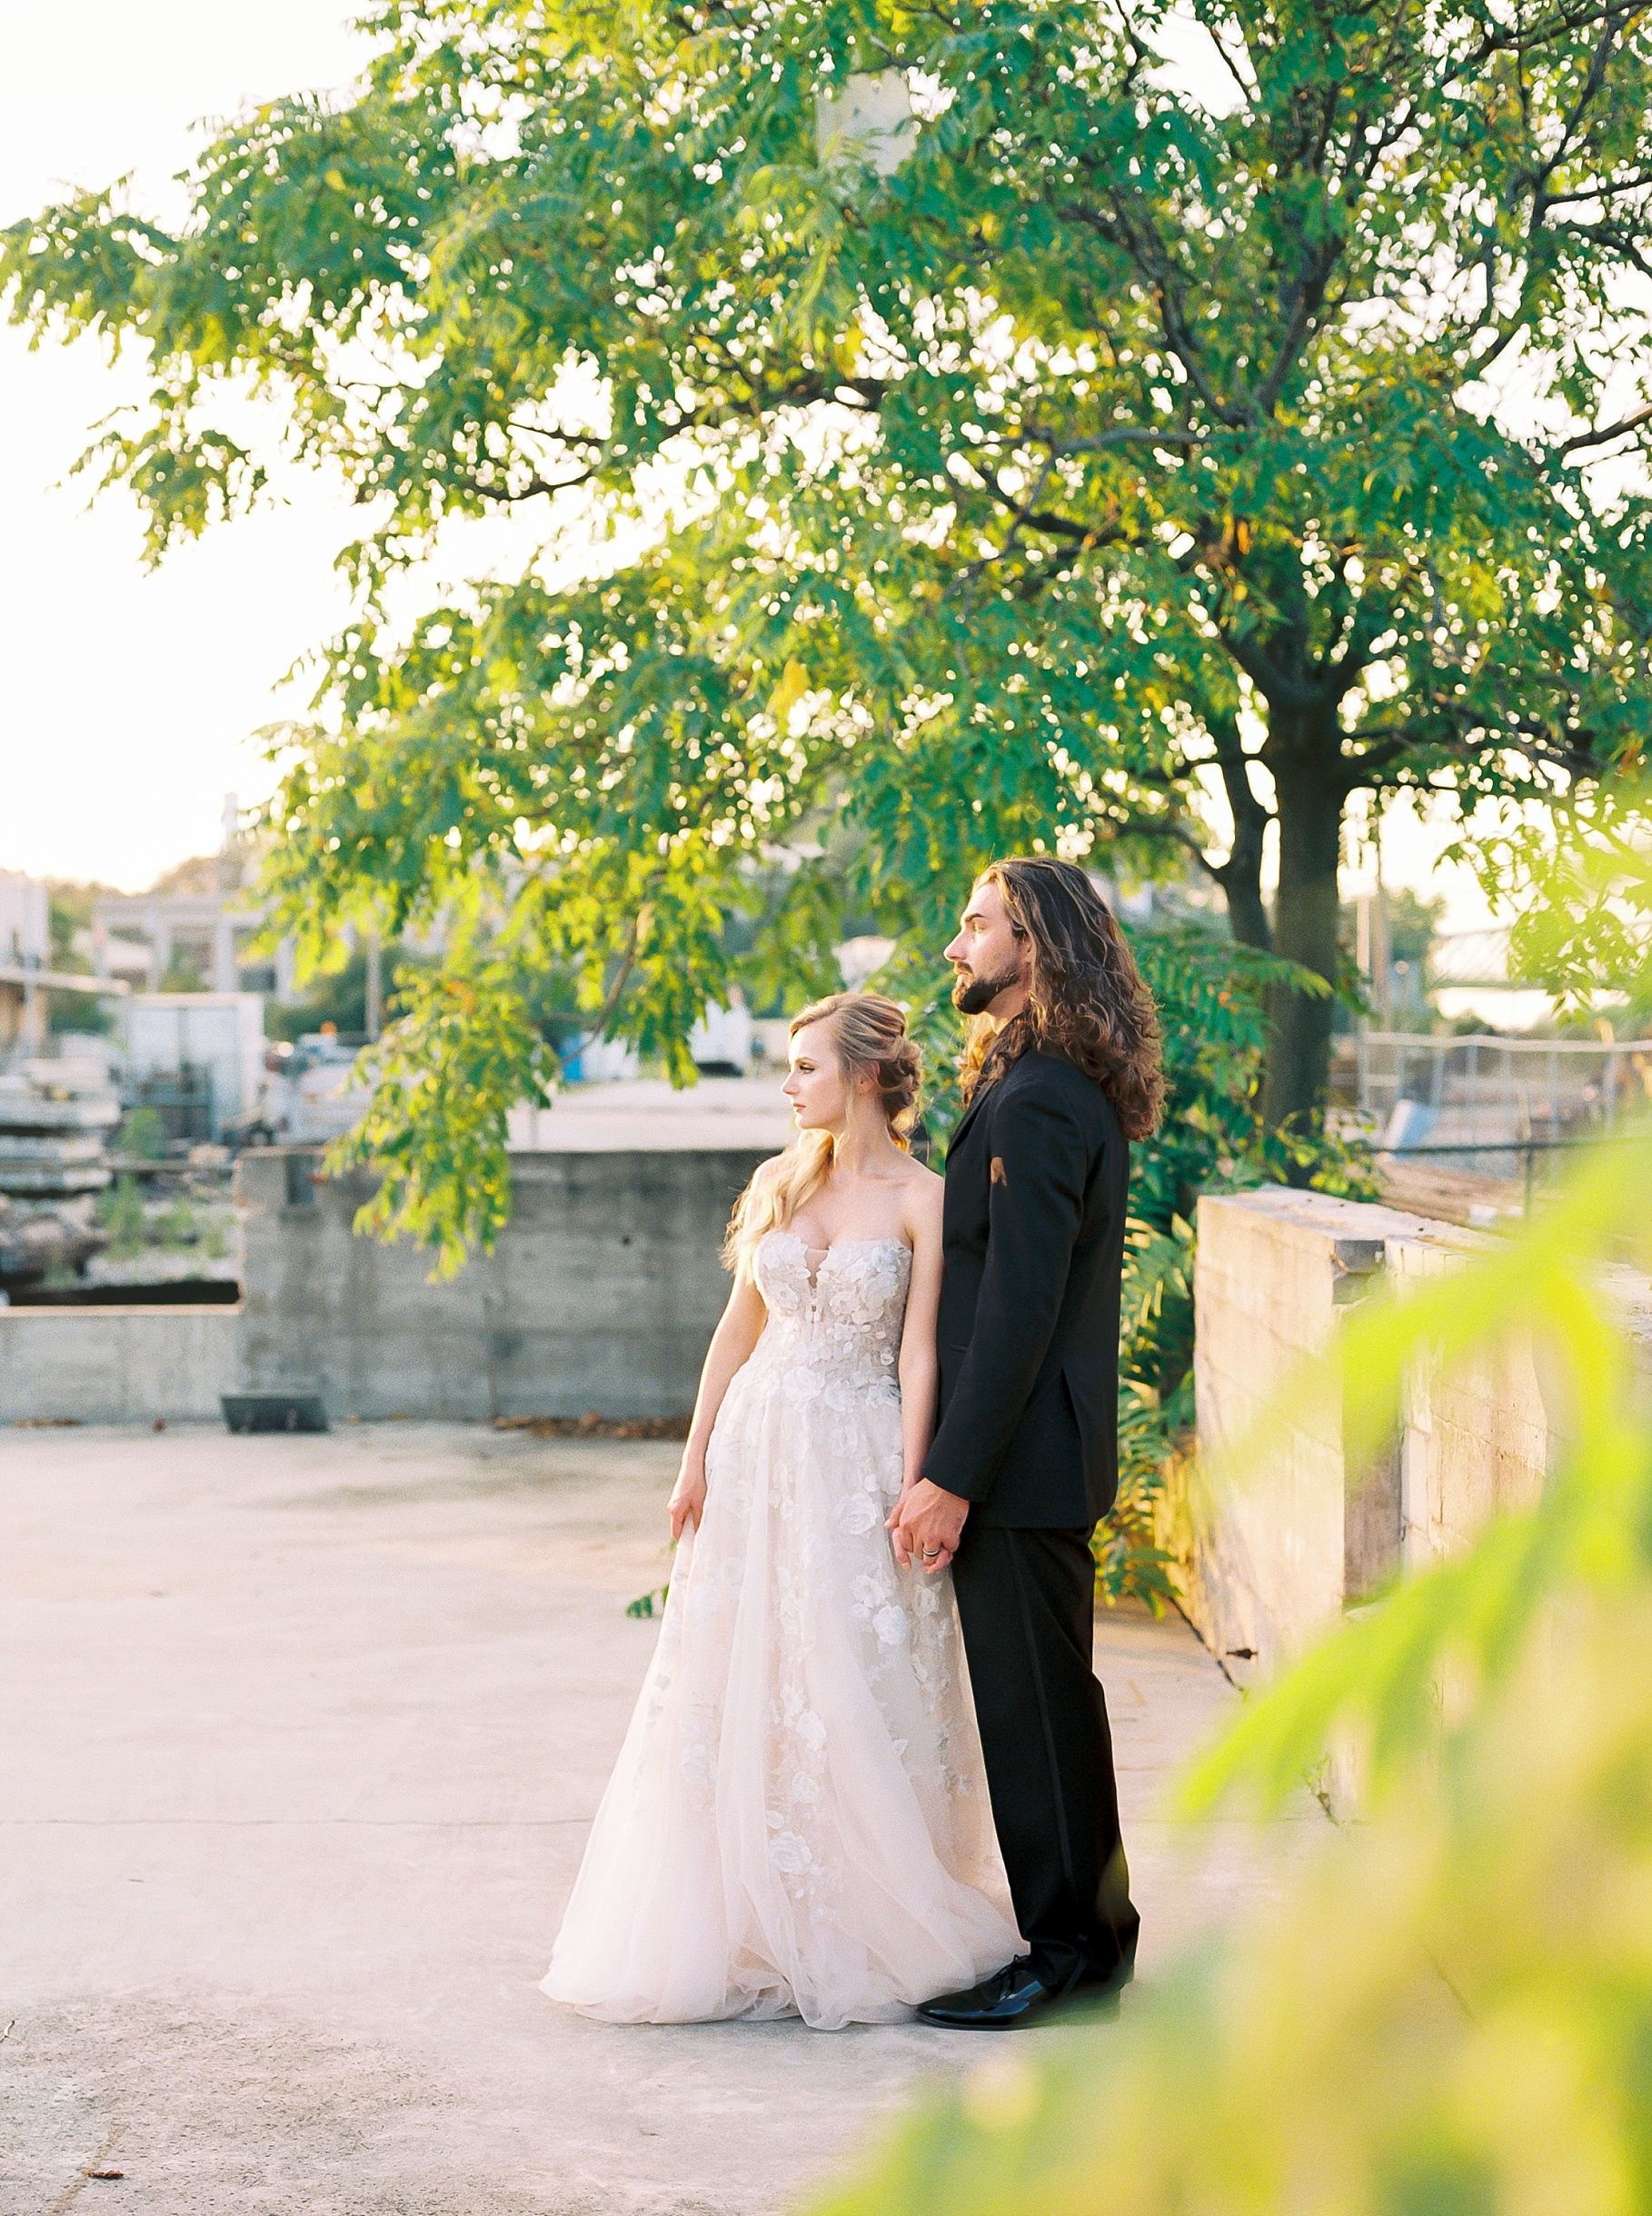 Urban Romance Wedding with Copper Accents at The Millbottom by Kelsi Kliethermes Photography Best Columbia Missouri Wedding Photographer_0051.jpg